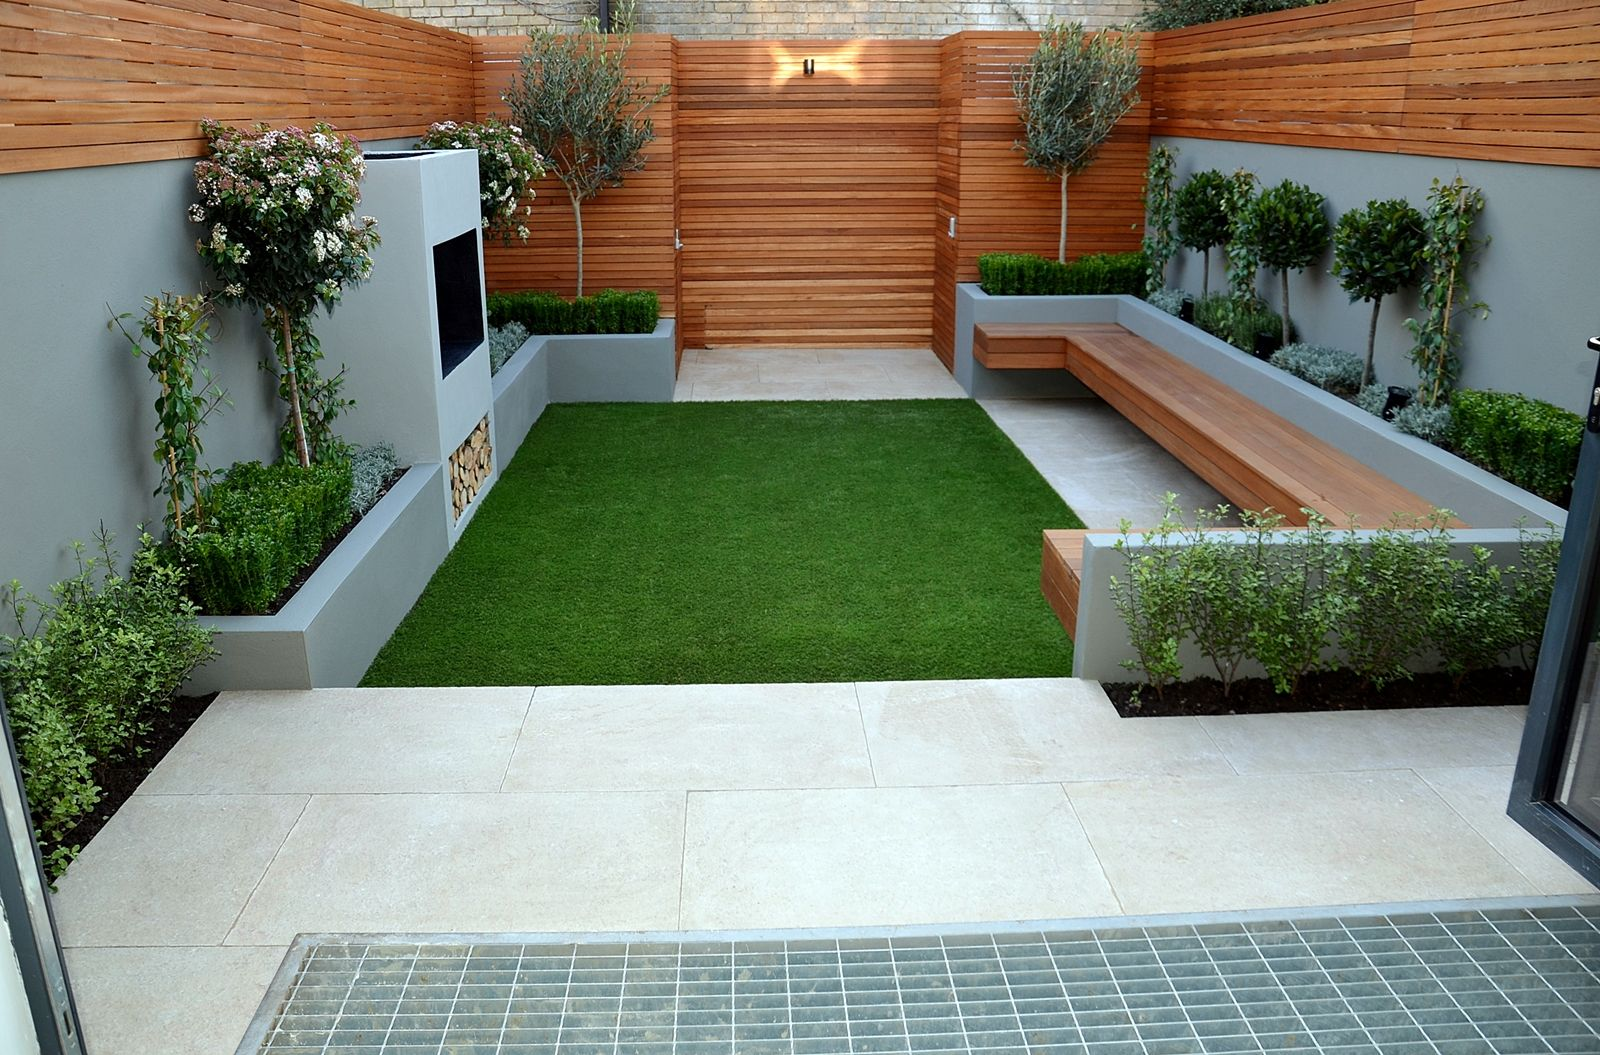 Urban garden design designer gardens landscape design for Urban garden design ideas